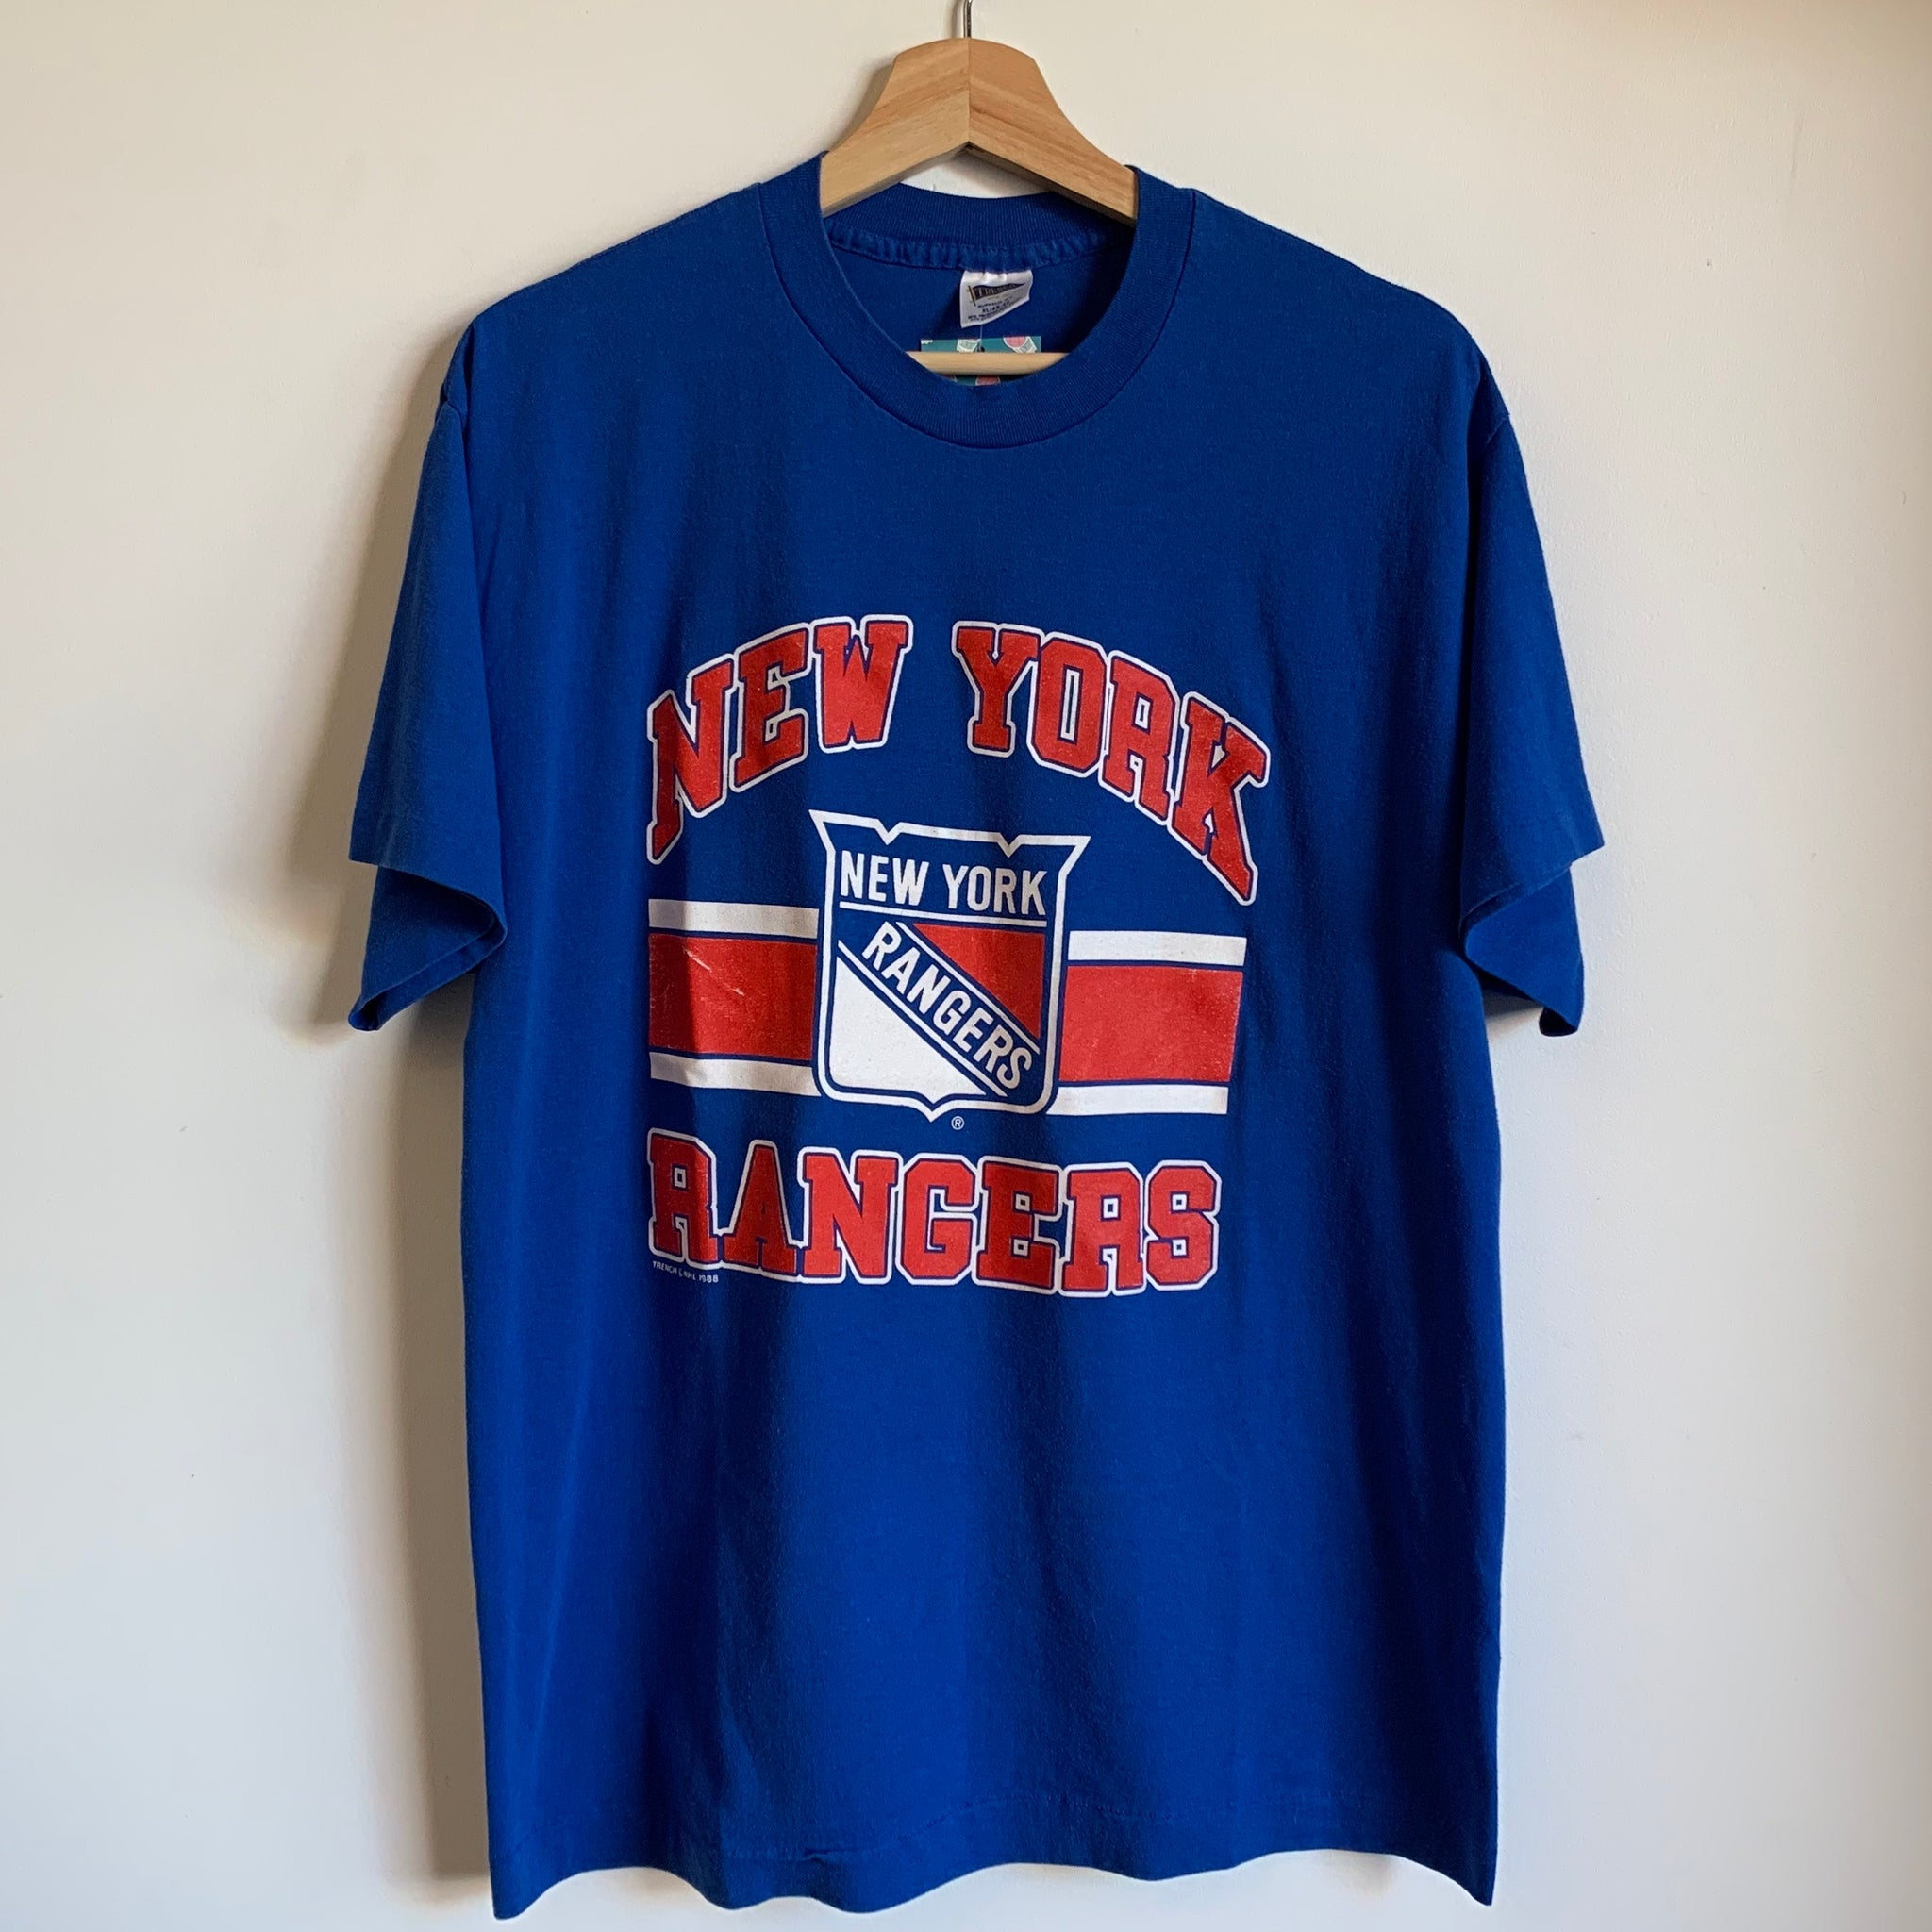 1988 Trench New York Rangers Blue Tee Shirt